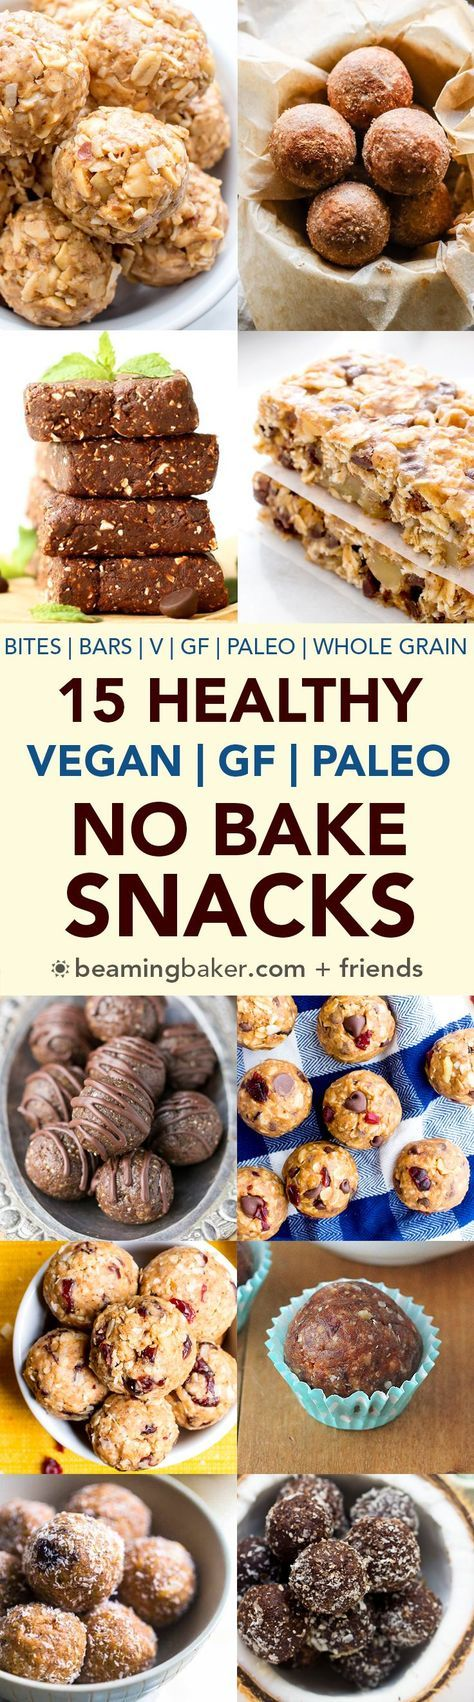 15 Healthy Gluten Free Vegan No Bake Snacks: a tasty collection of 15 easy, no bake recipes for gluten free vegan snacks that are good for ya! #Vegan #GlutenFree #Paleo #DairyFree | http://BeamingBaker.com